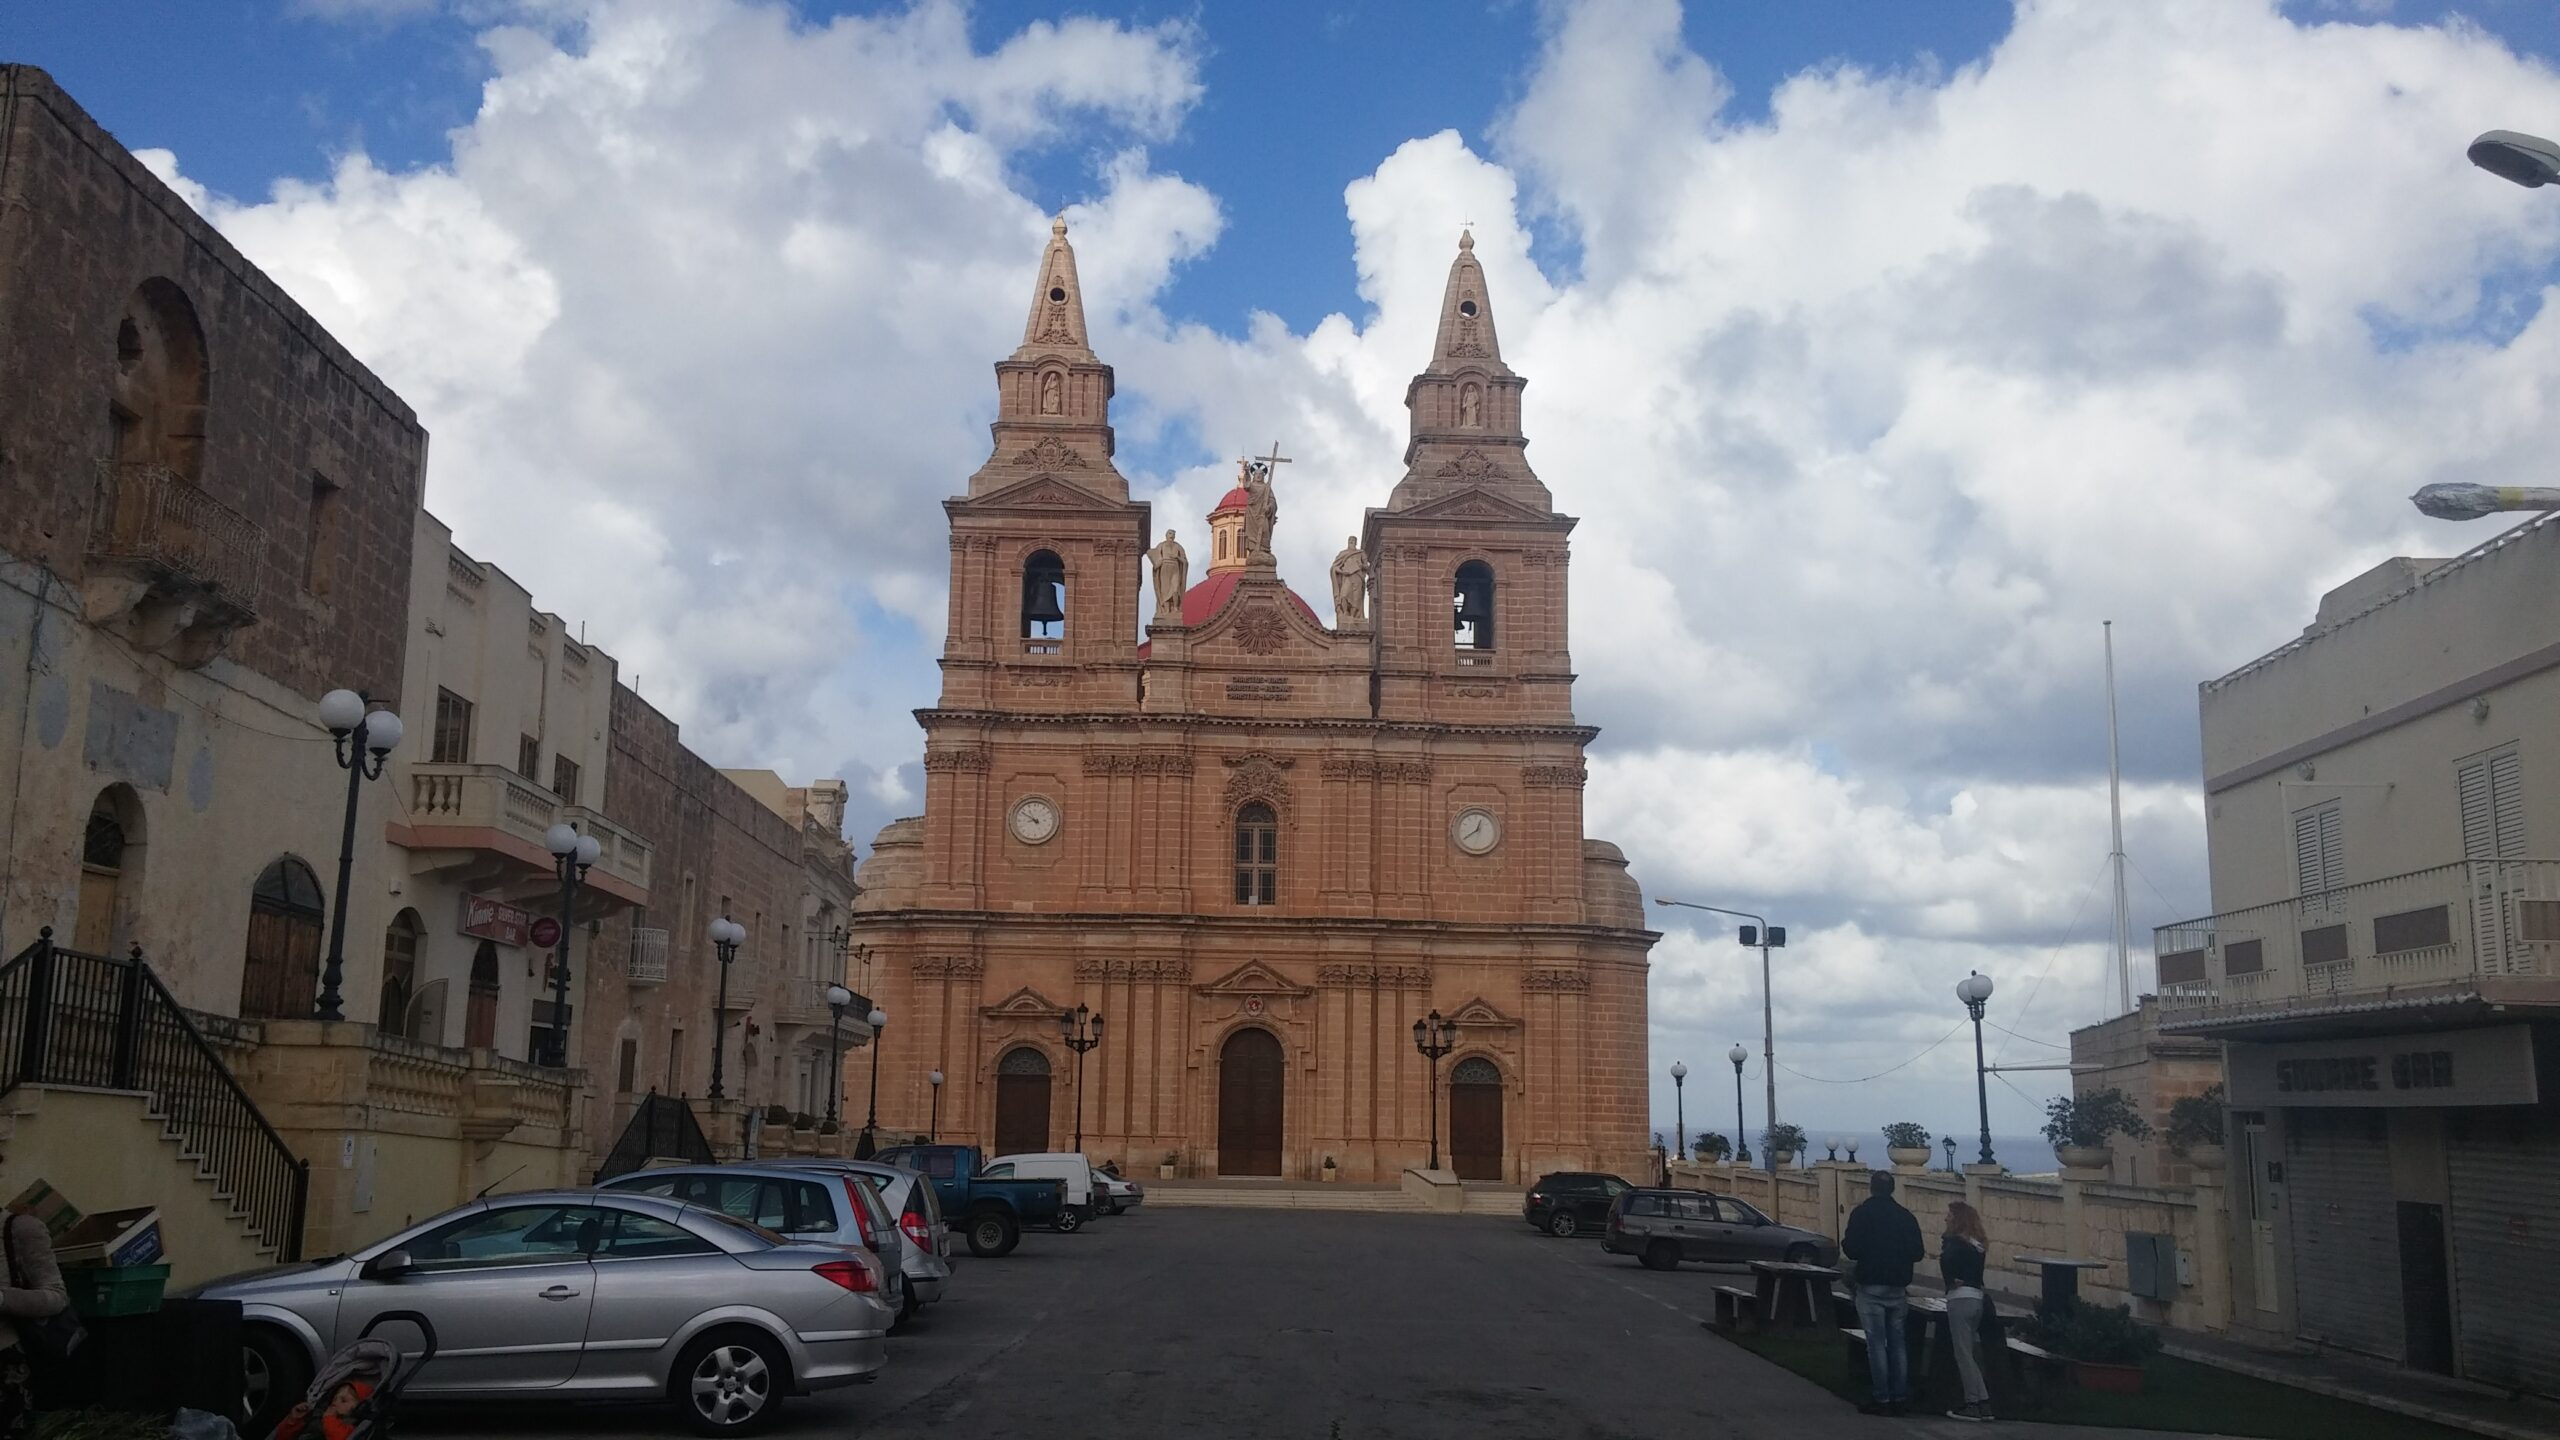 digital nomads in Malta can explore culture at their leisure